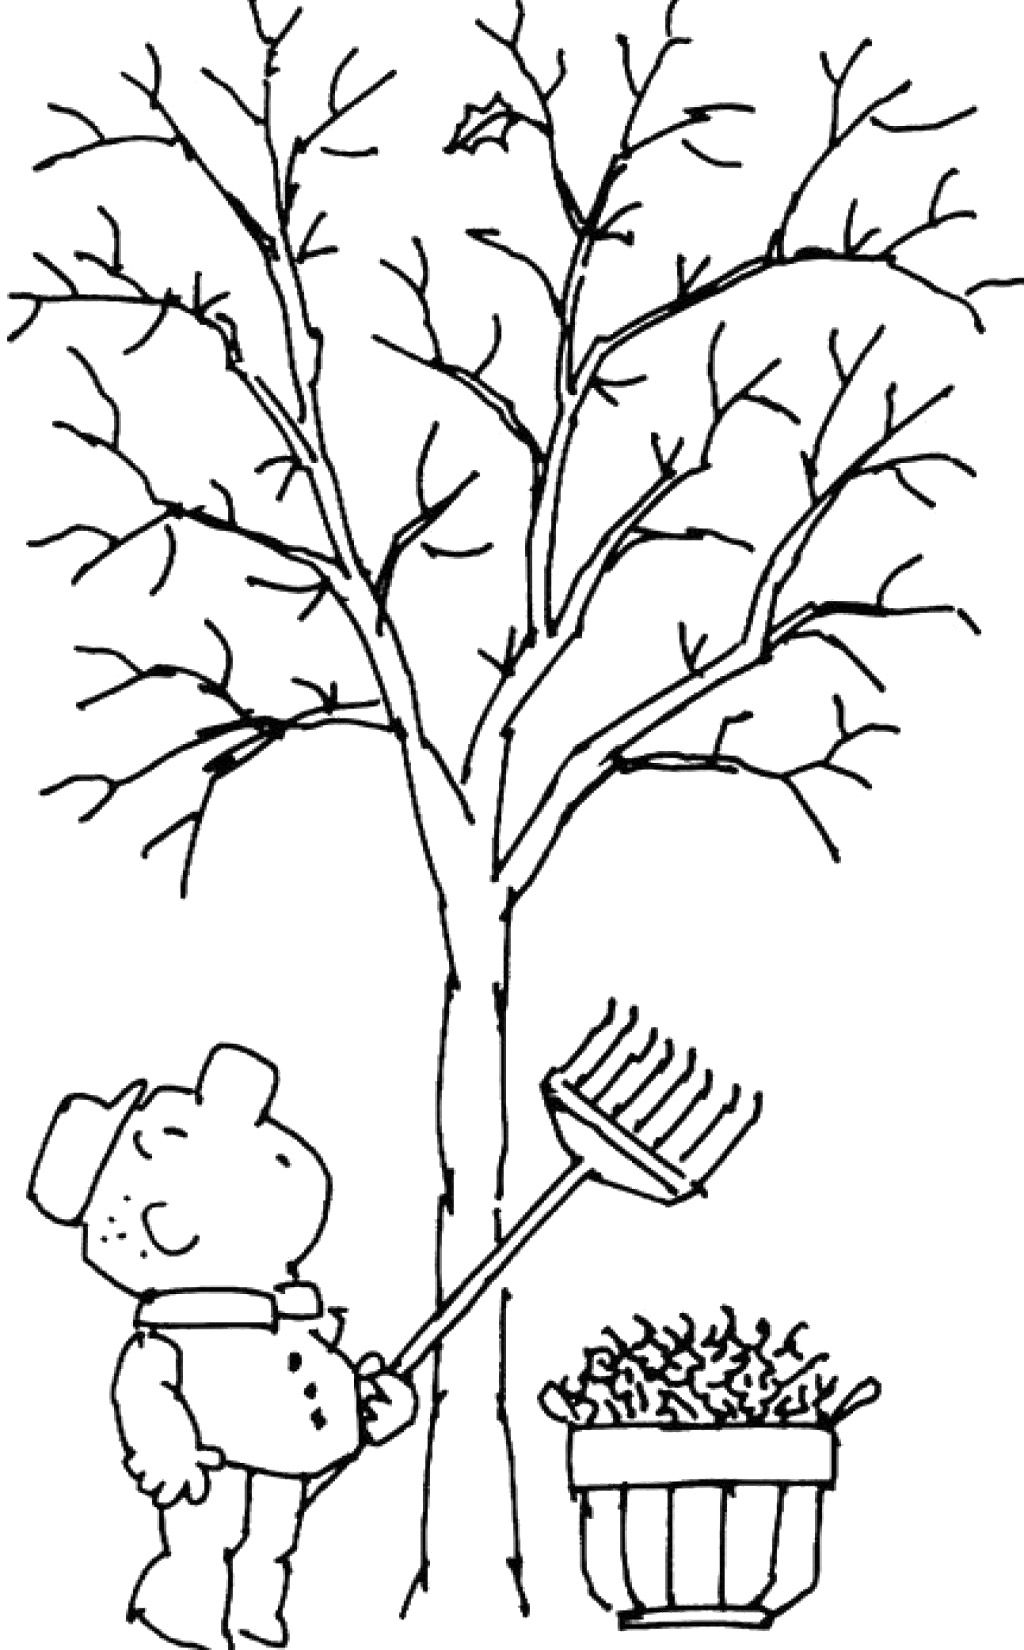 Tree without leaves coloring page to print and download for kids for ...